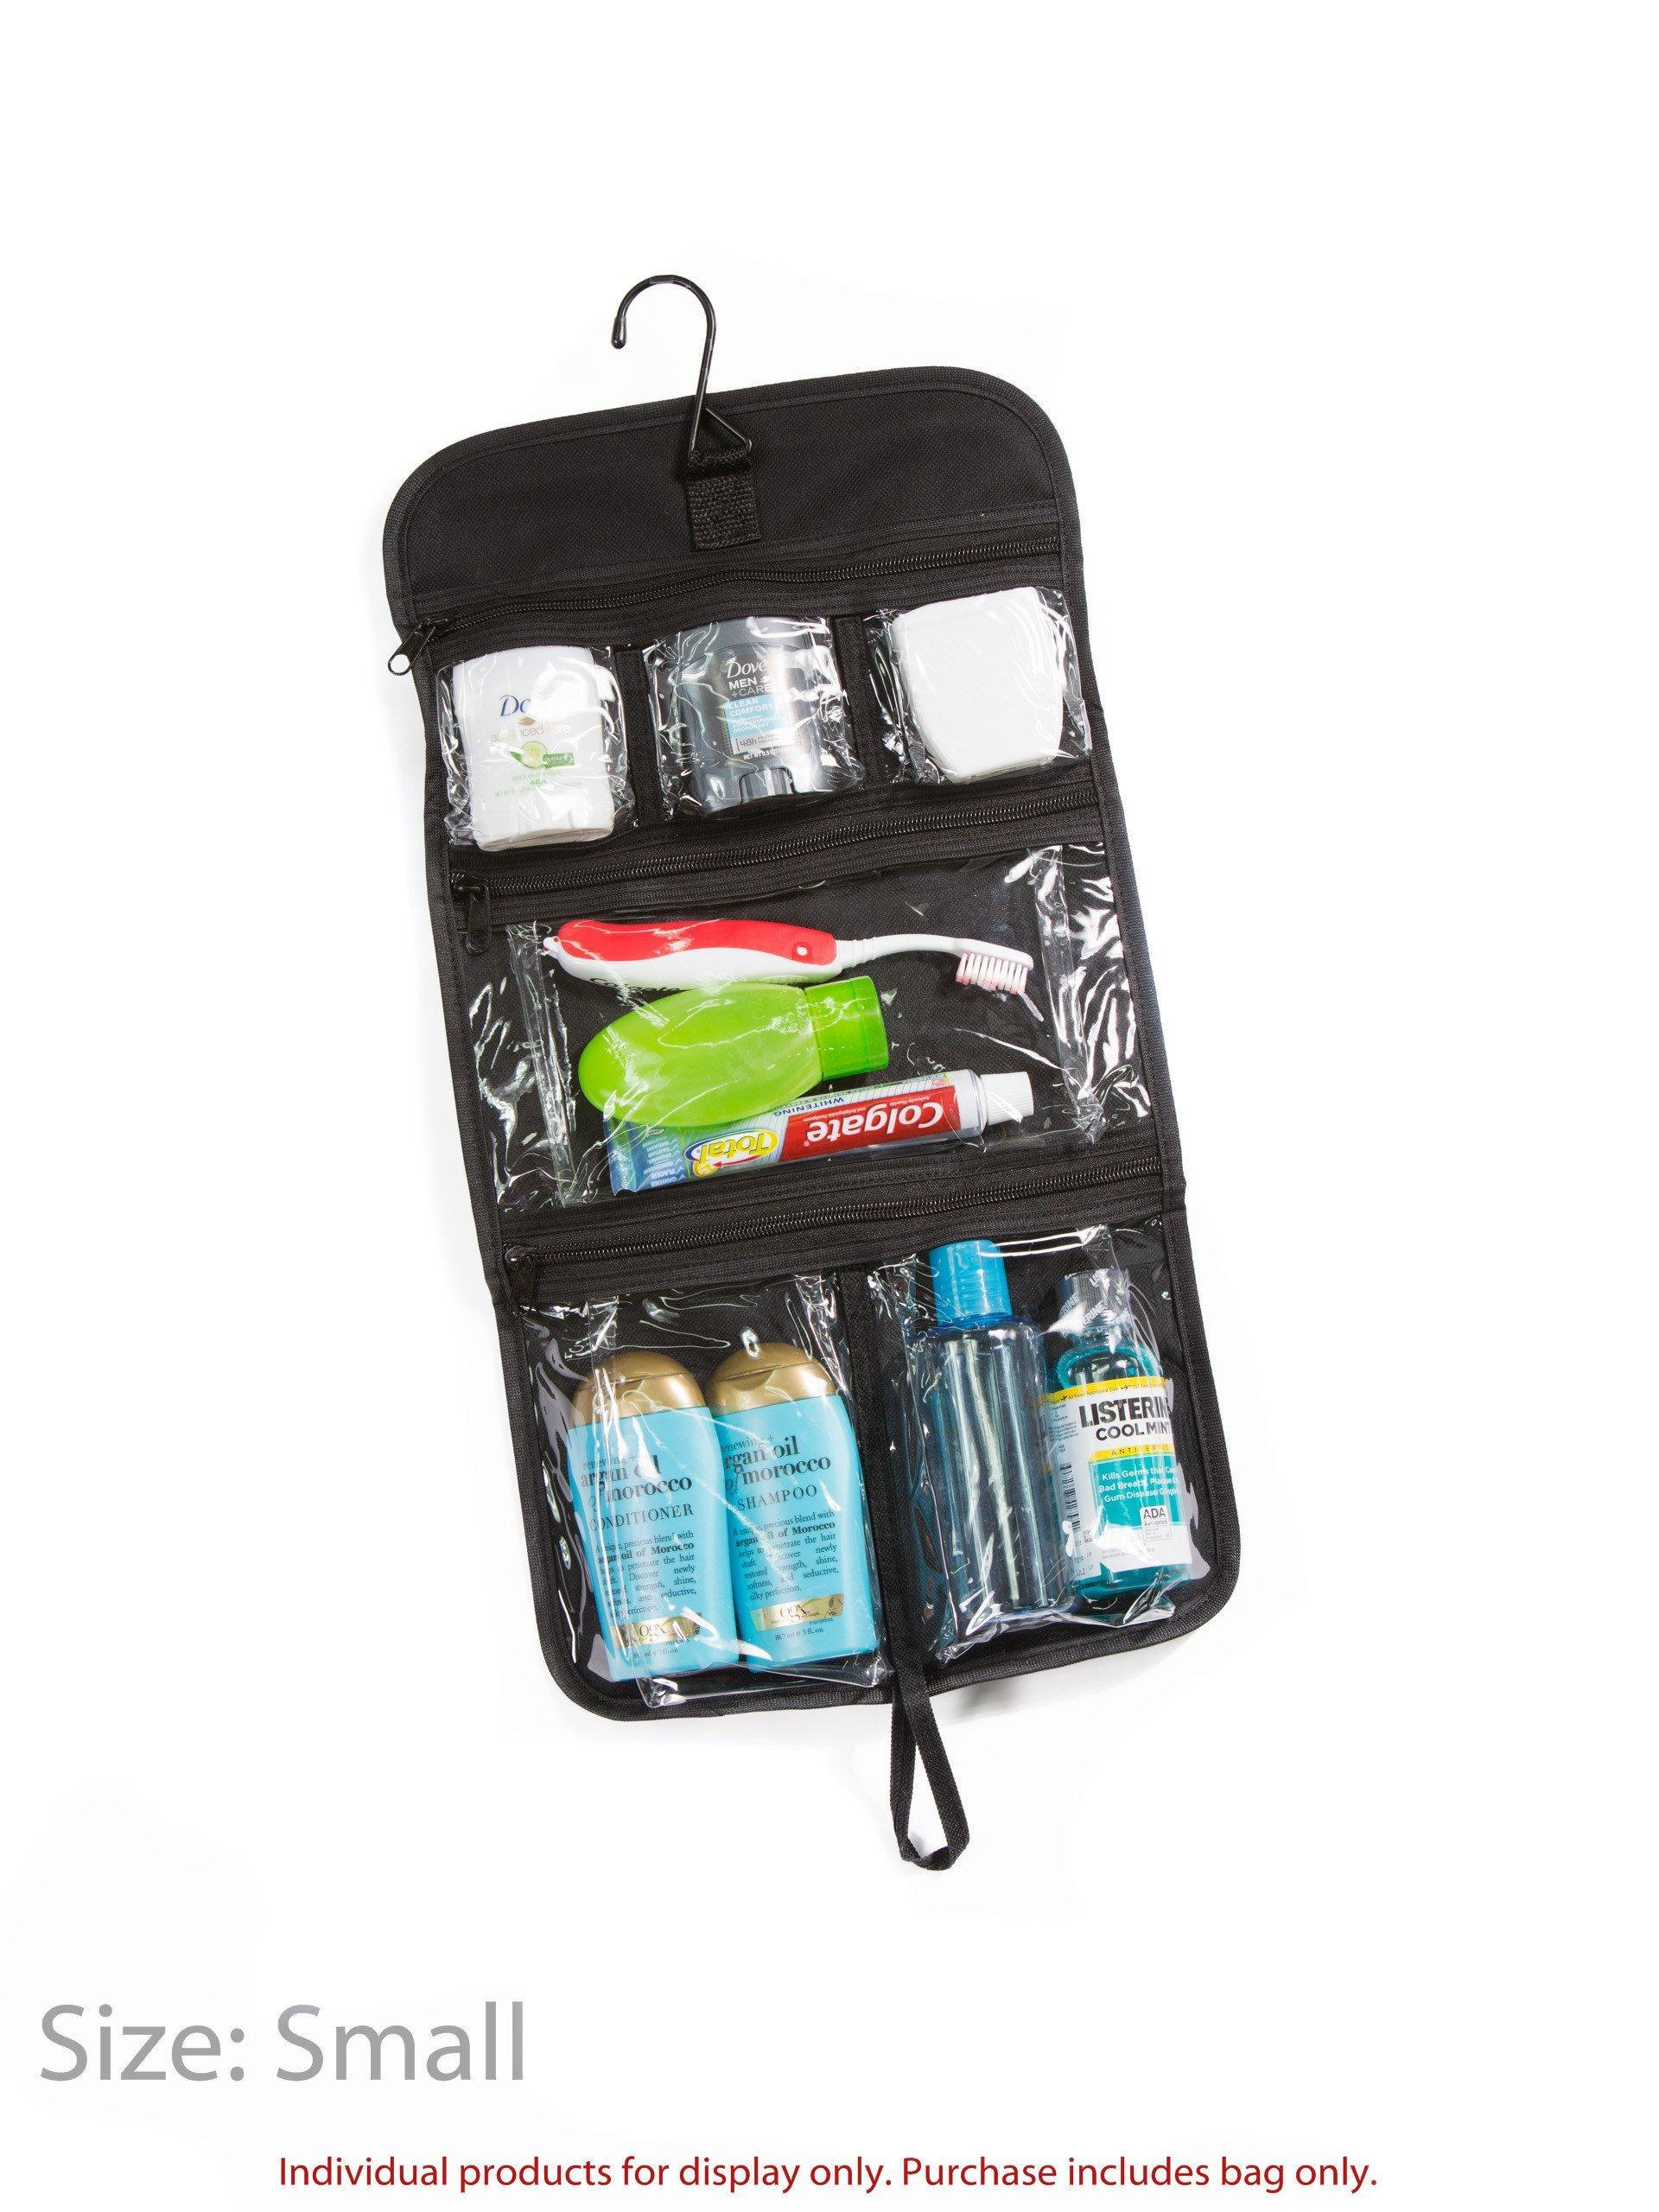 ec19d5941e3 Expert Traveler Hanging Toiletry Bag - Designed By Travelers for Travelers  - Fishers Finery